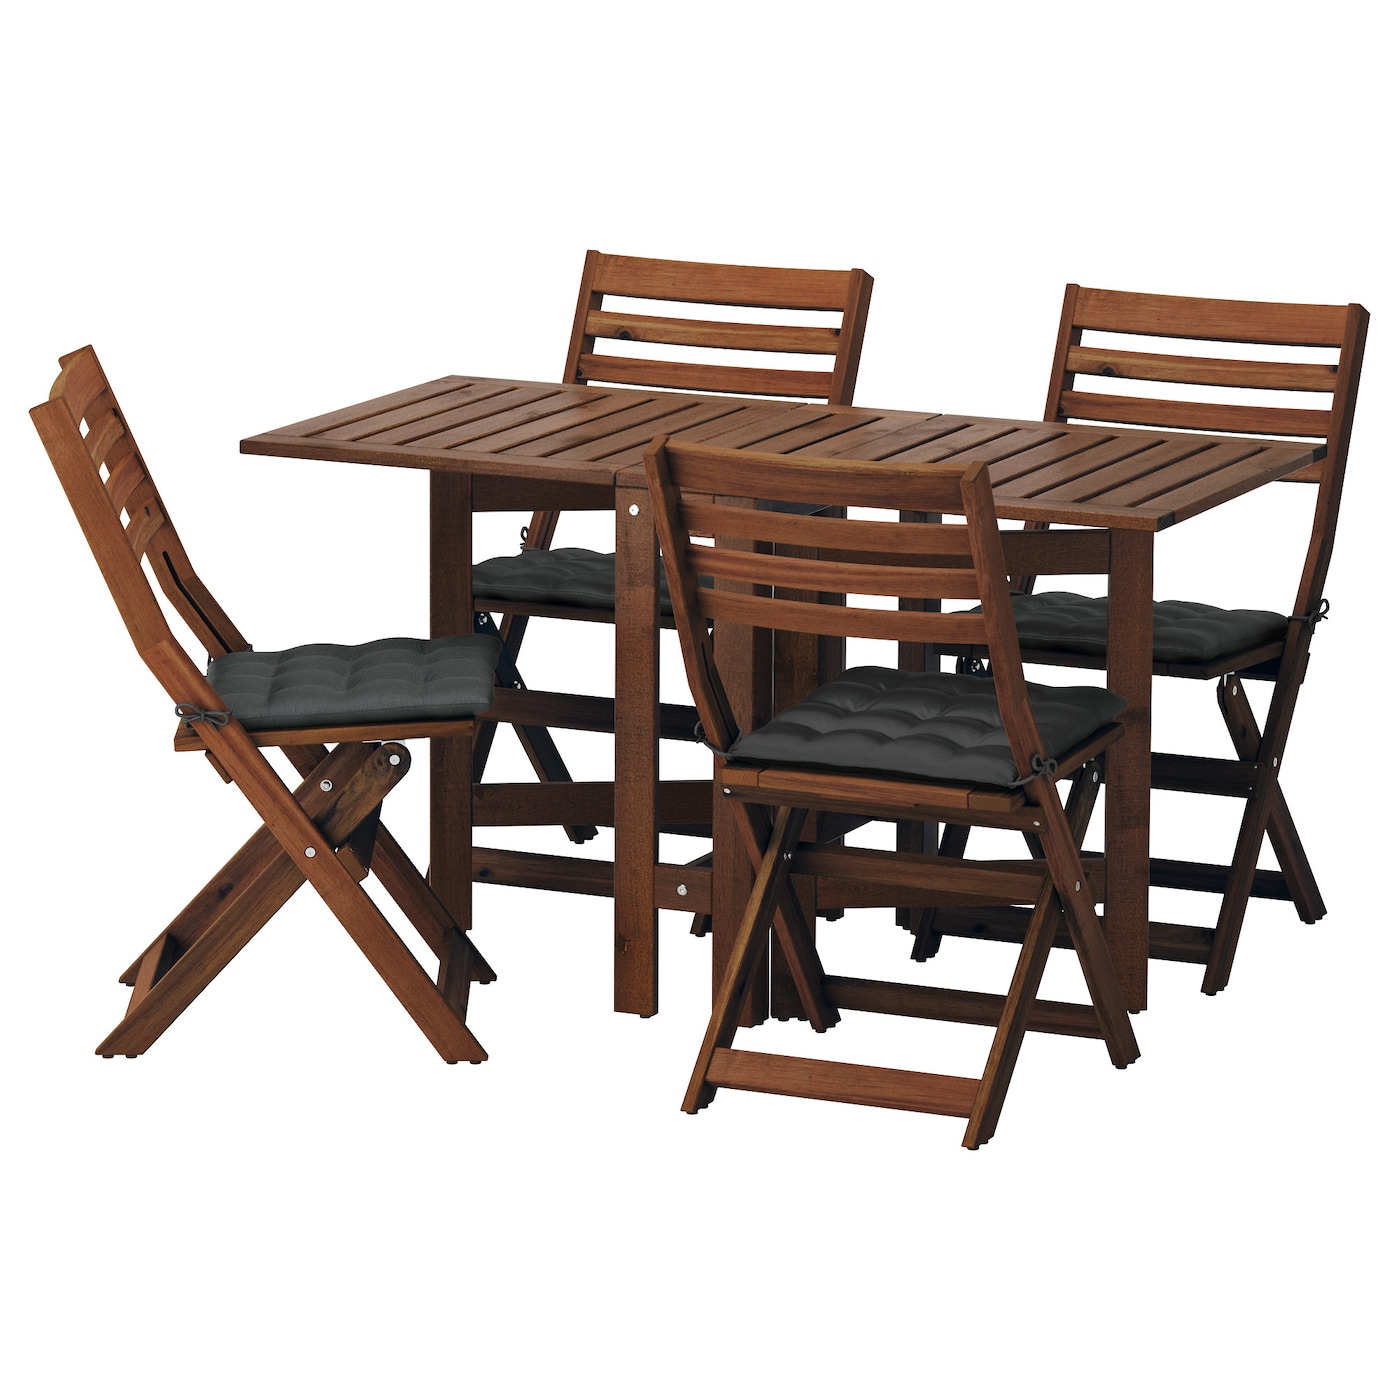 PPLAR Table4 folding chairs outdoor Brown stainedhll black